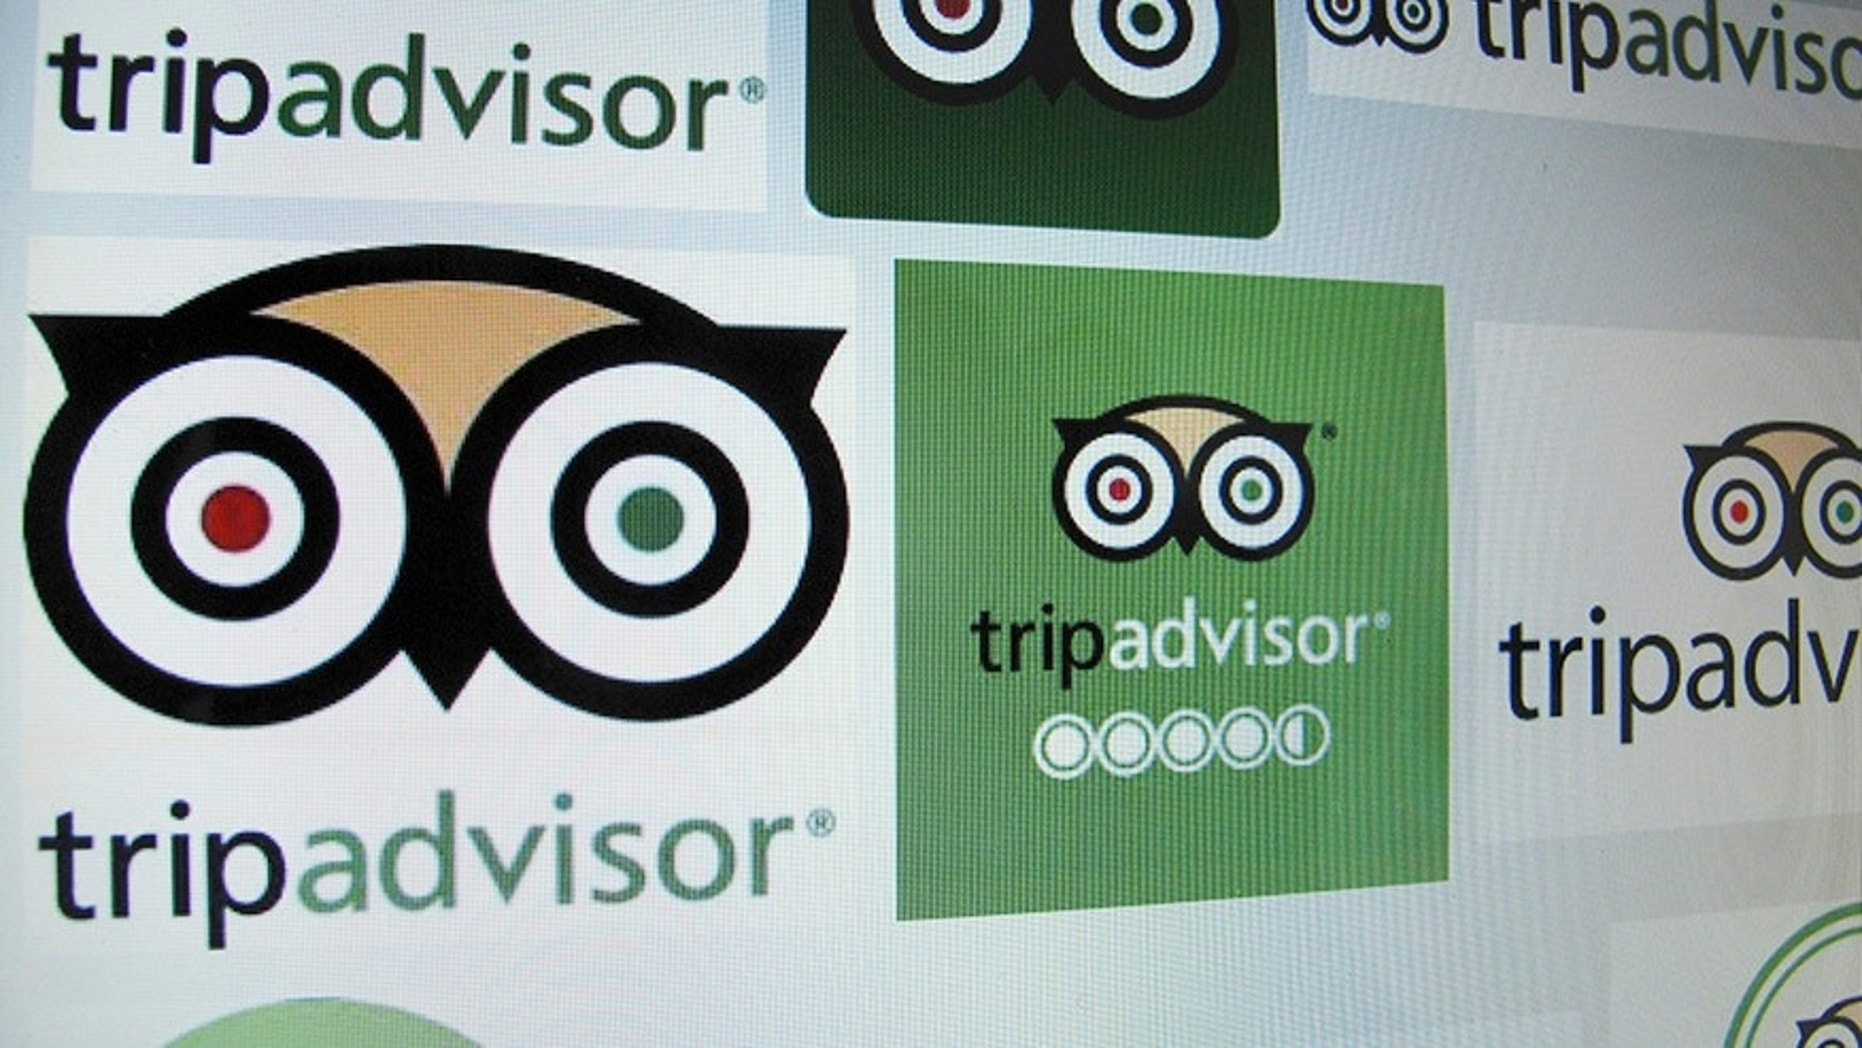 Tripadvisor Scrubs Warnings of Rape, Tainted Alcohol at Mexican Resorts, Travelers Say